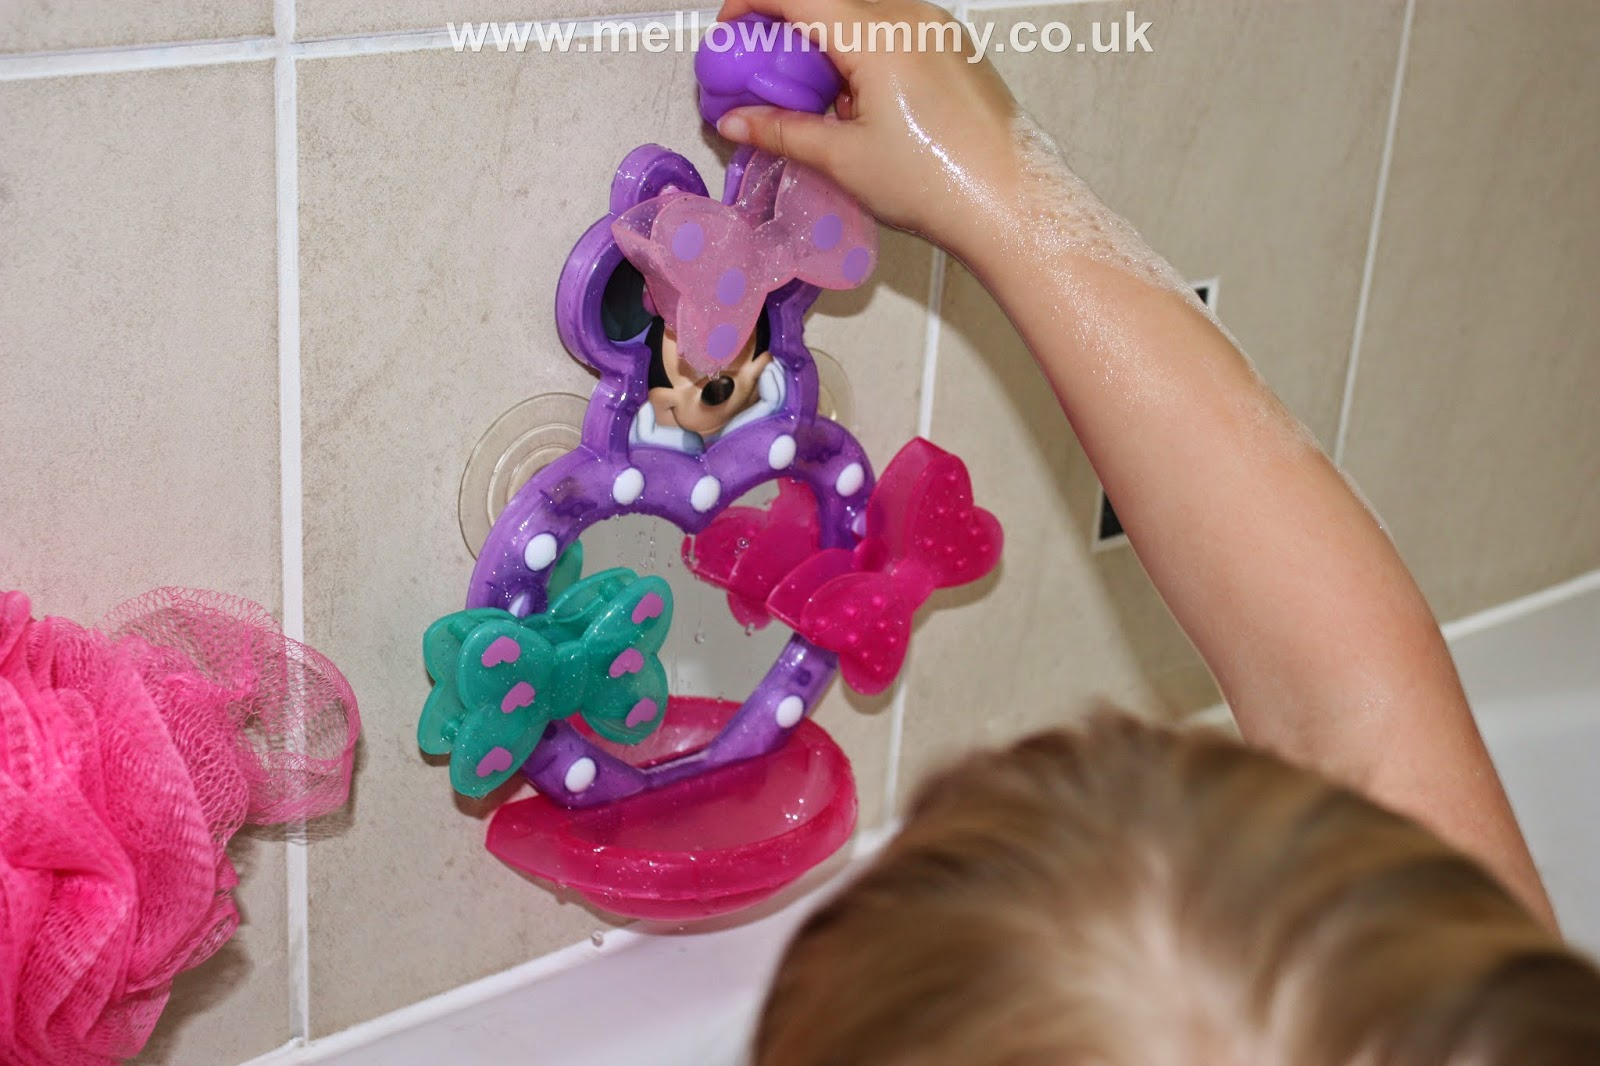 Mellow Mummy Disney Minnie Mouse Bath Toys By Fisher Price A